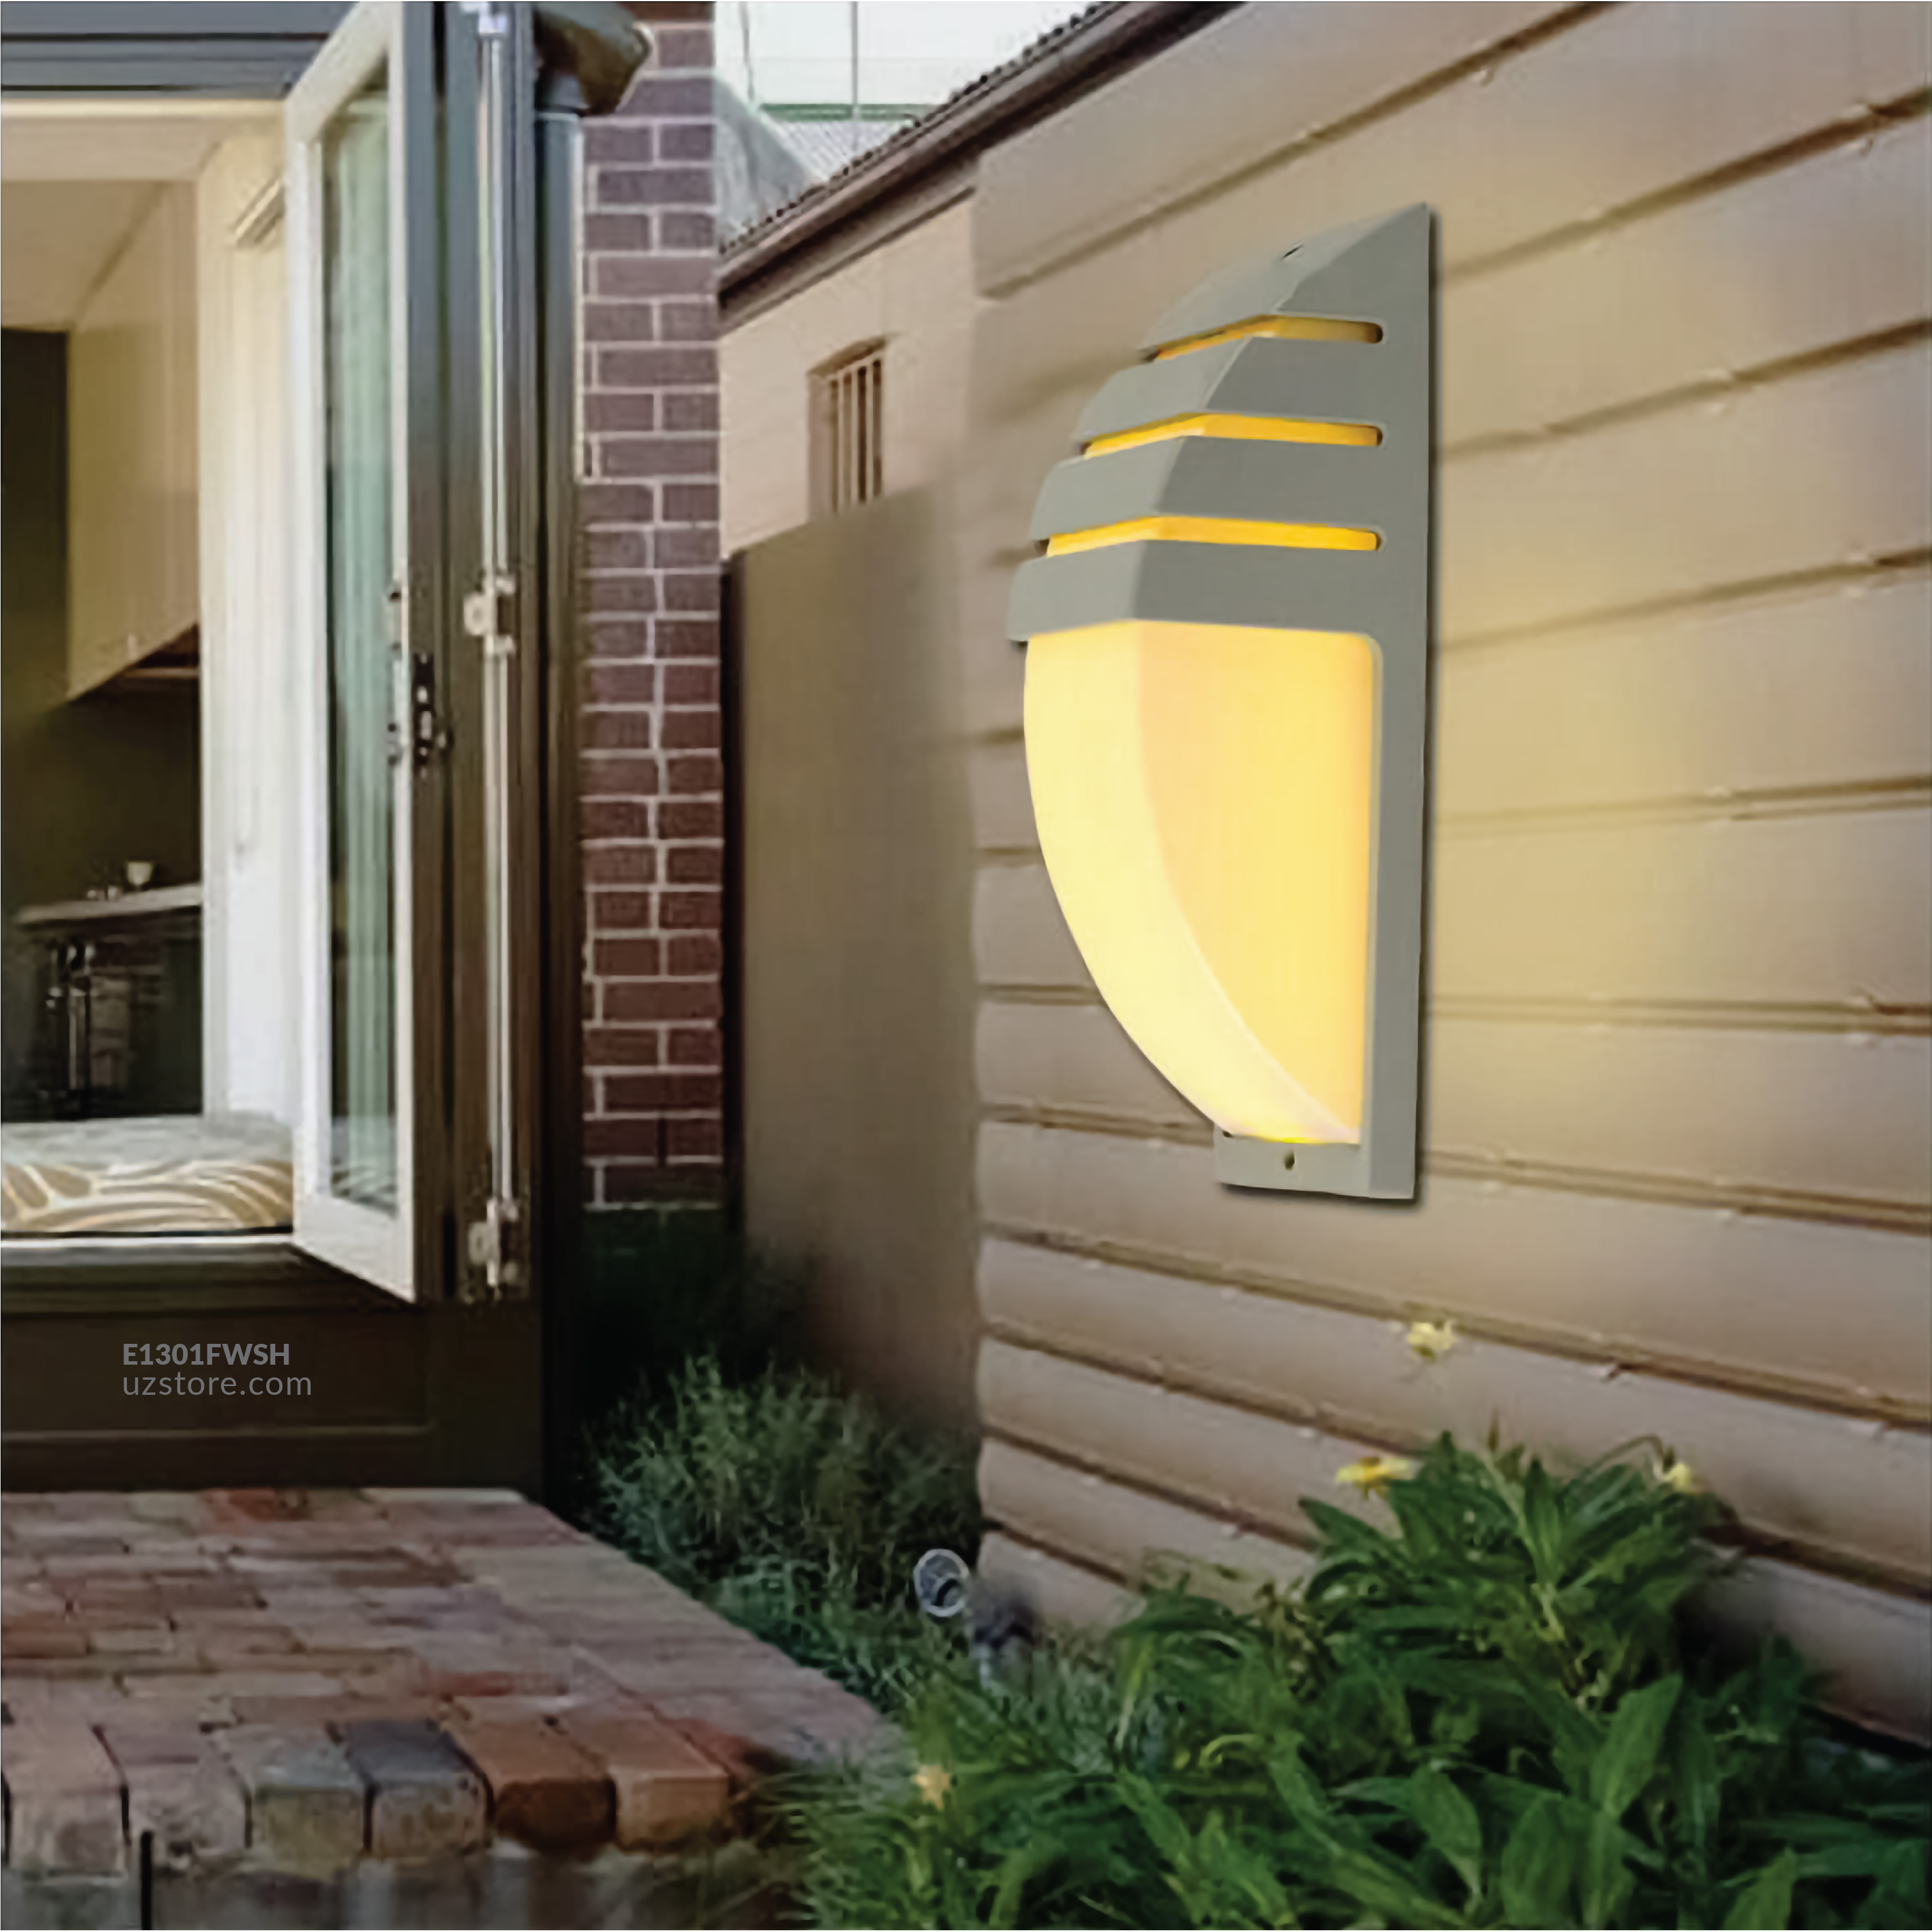 LED Outdoor Wall LIGHT  JKF26/S3W WW White